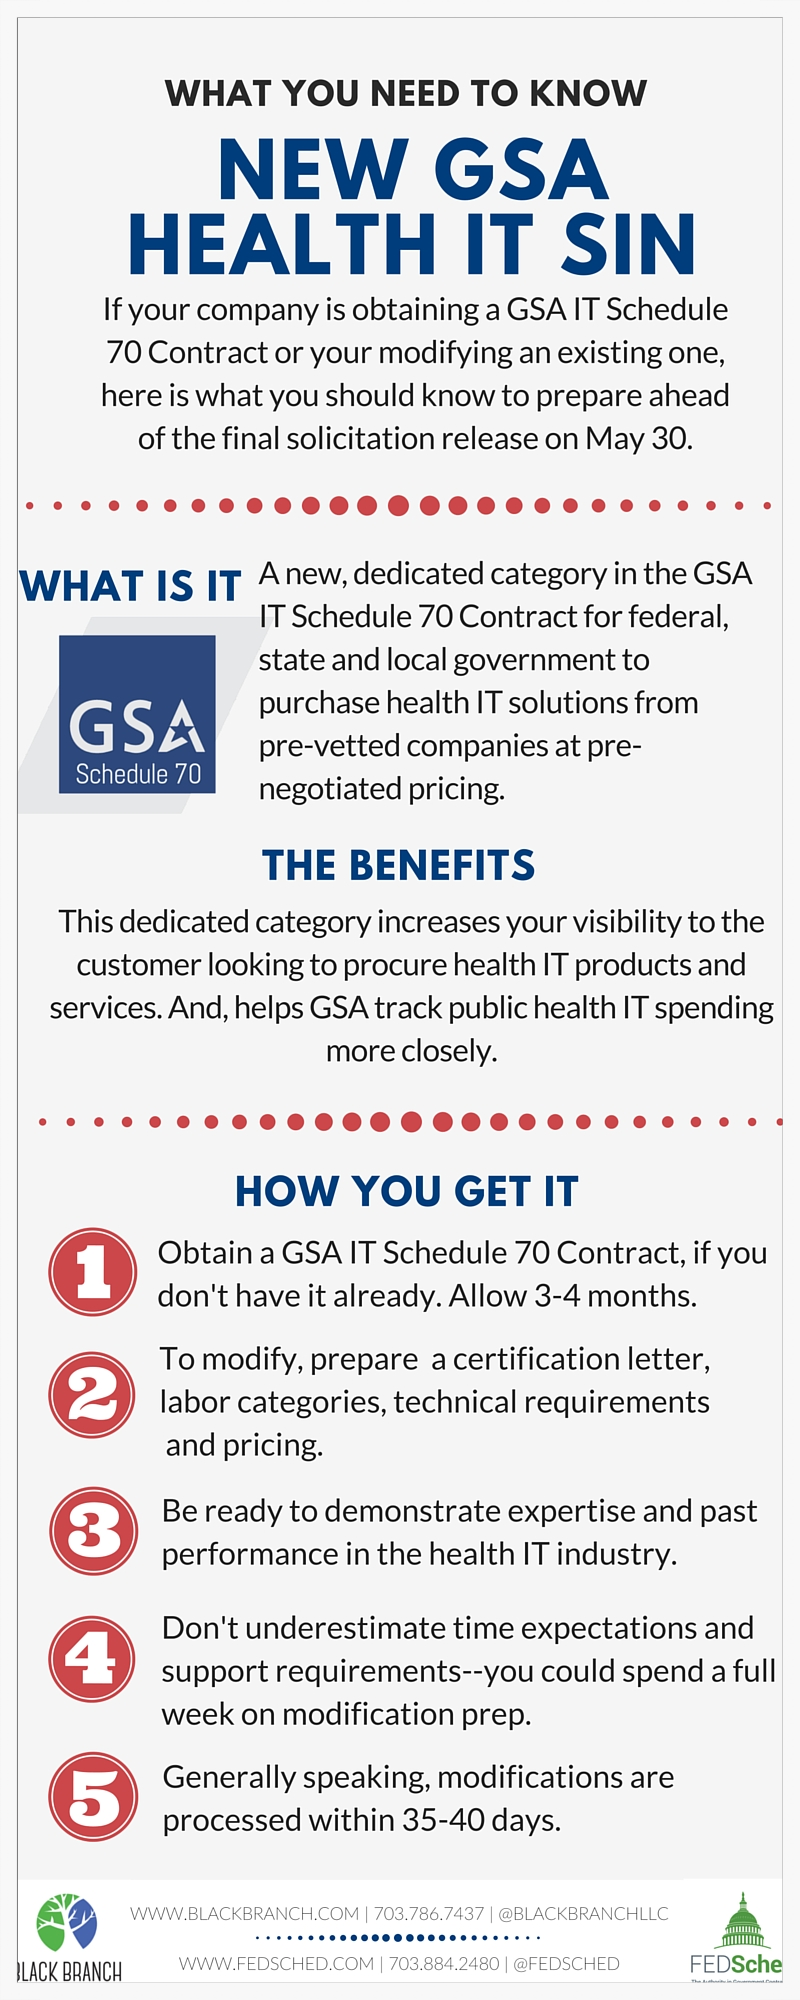 Infographic: What you need to know about obtaining or adding the new GSA Schedule 70 Health IT SIN